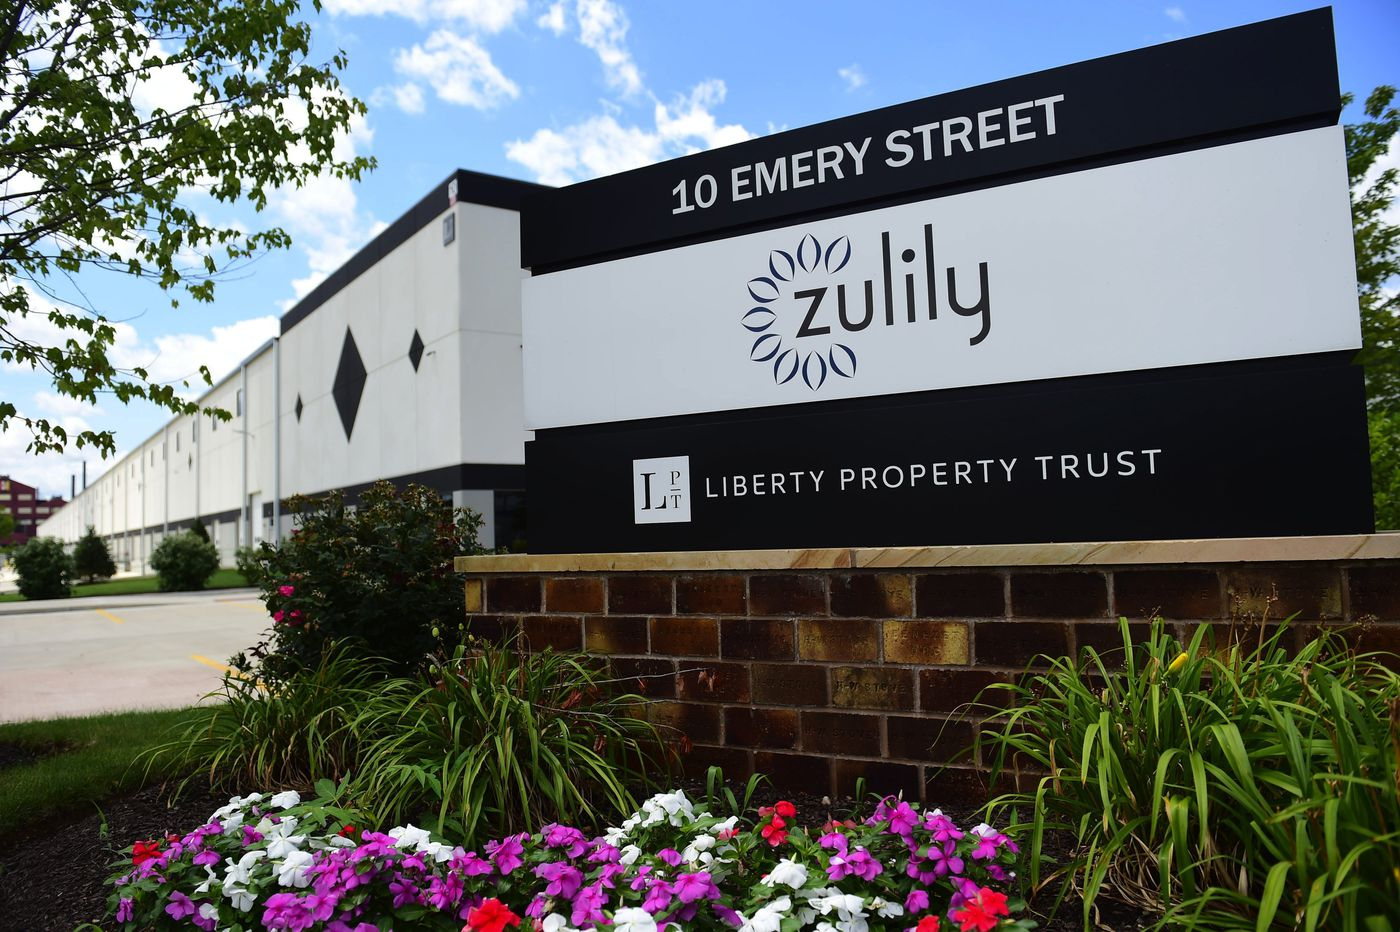 Liberty Property Trust shares soar on news of its acquisition by warehouse giant Prologis